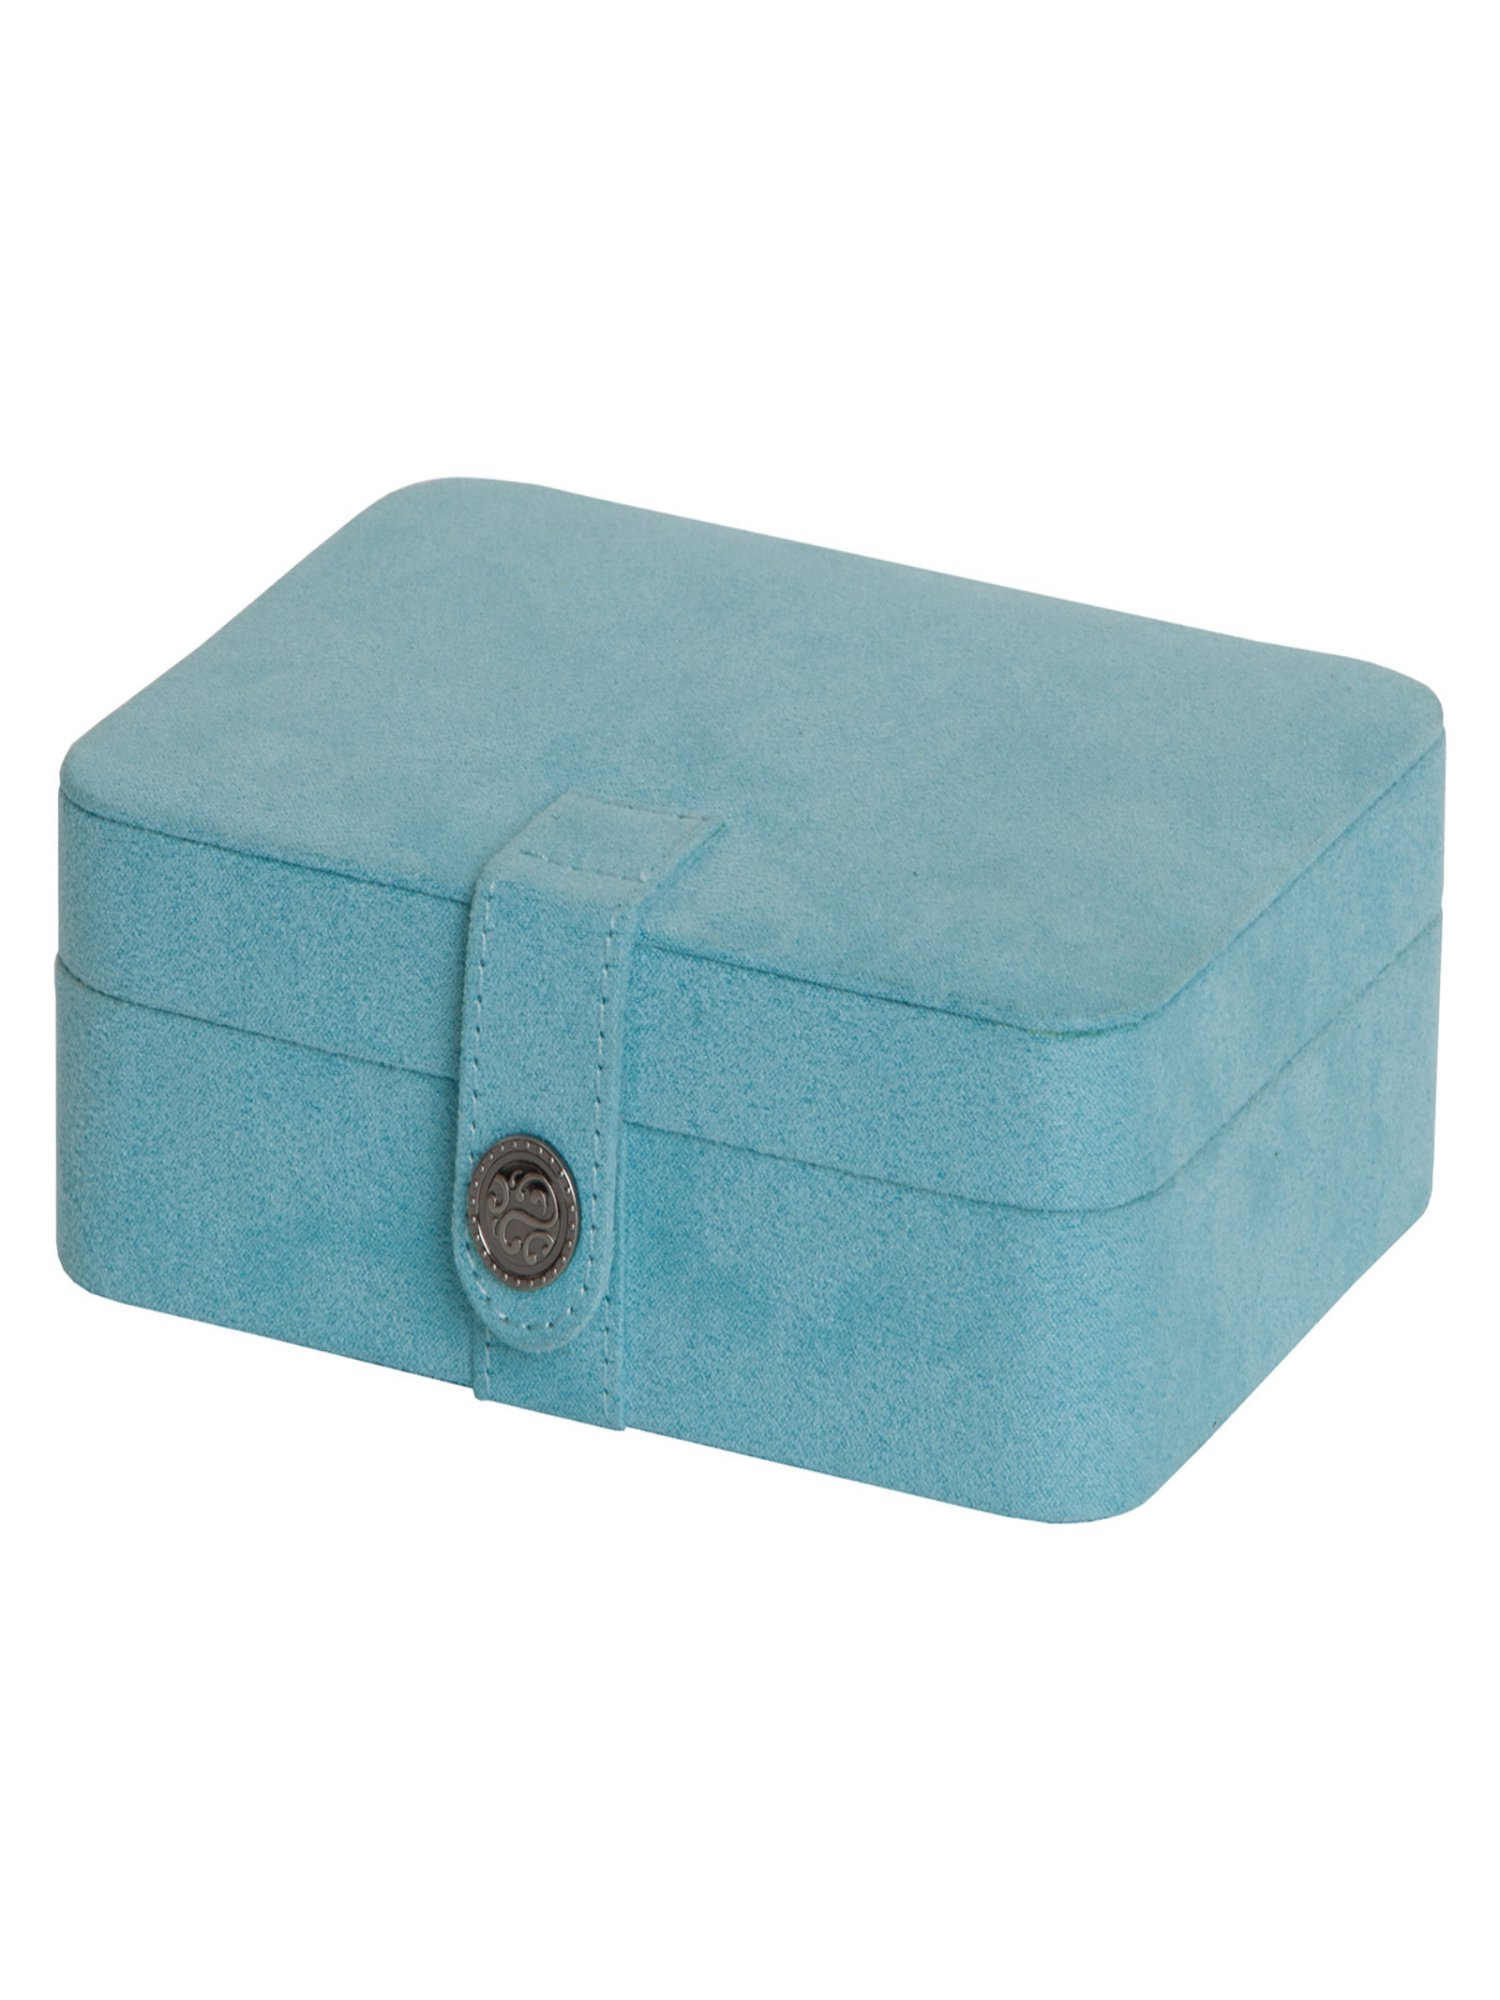 Mele & Co. Giana Blue Plush Fabric Jewelry Box with Lift Out Tray - 7.38W x 2.38H in.